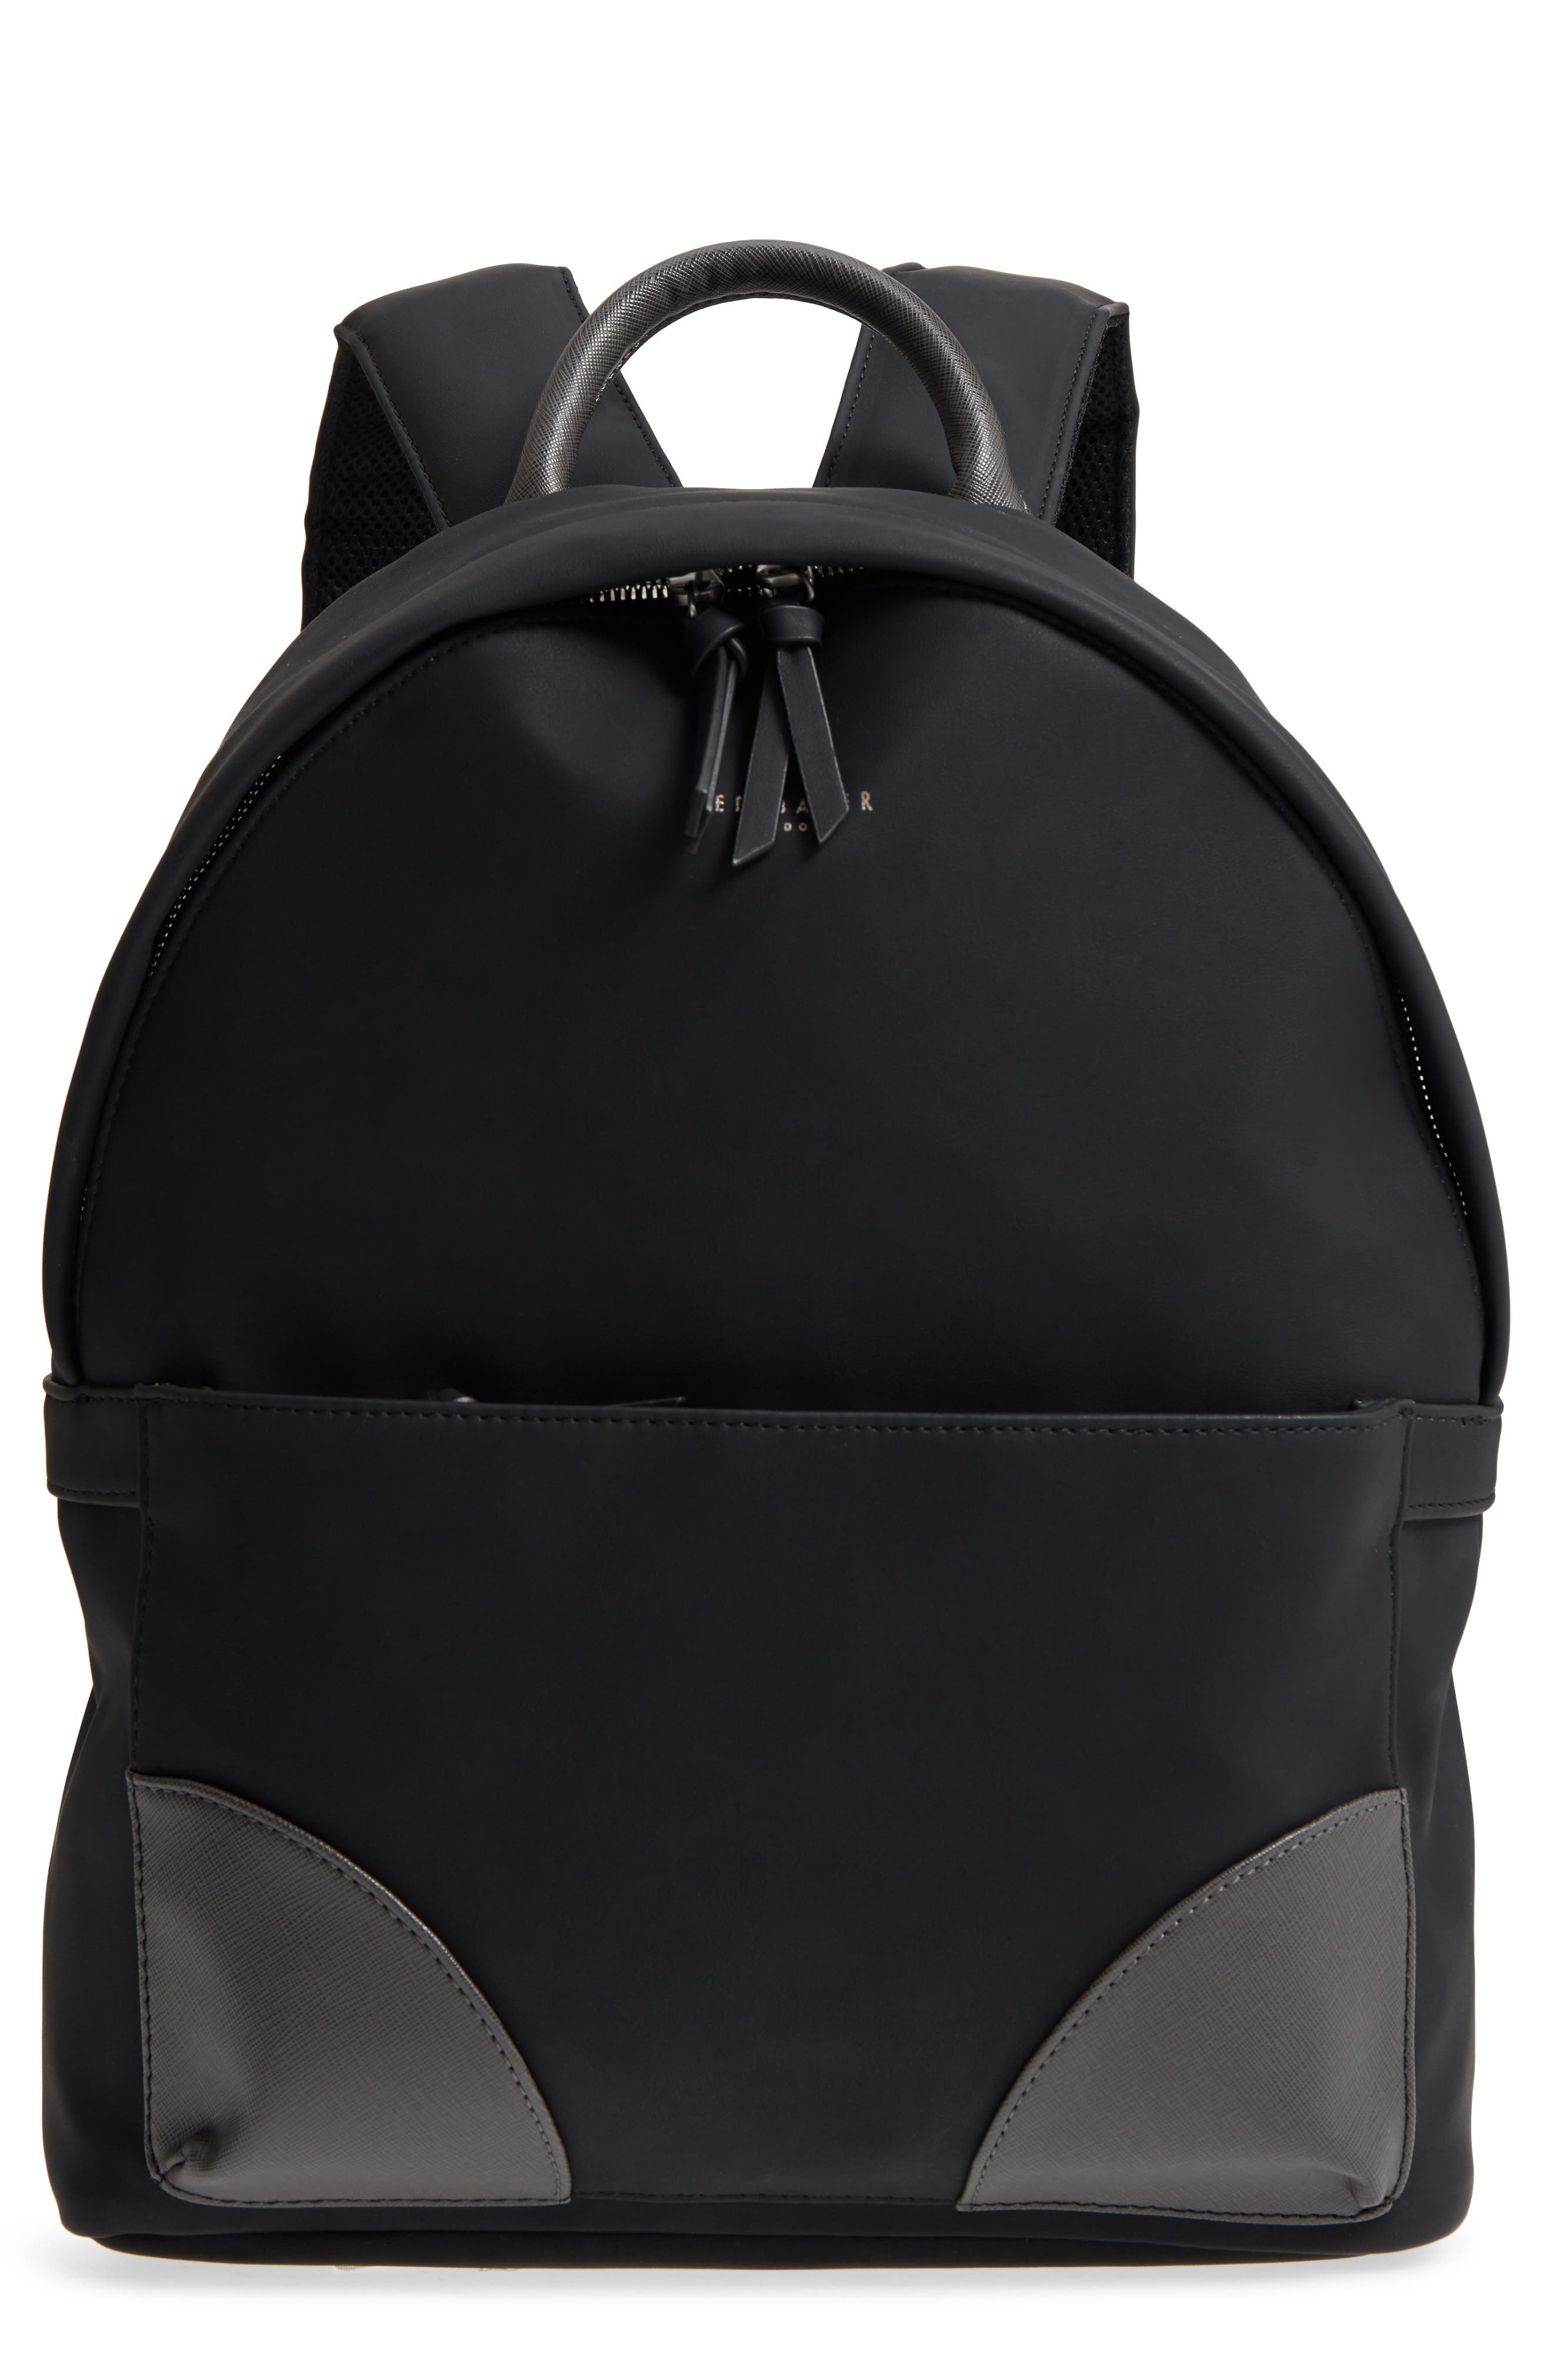 Ted Baker Passed Faux Leather Backpack - Black  e8997272afe3b